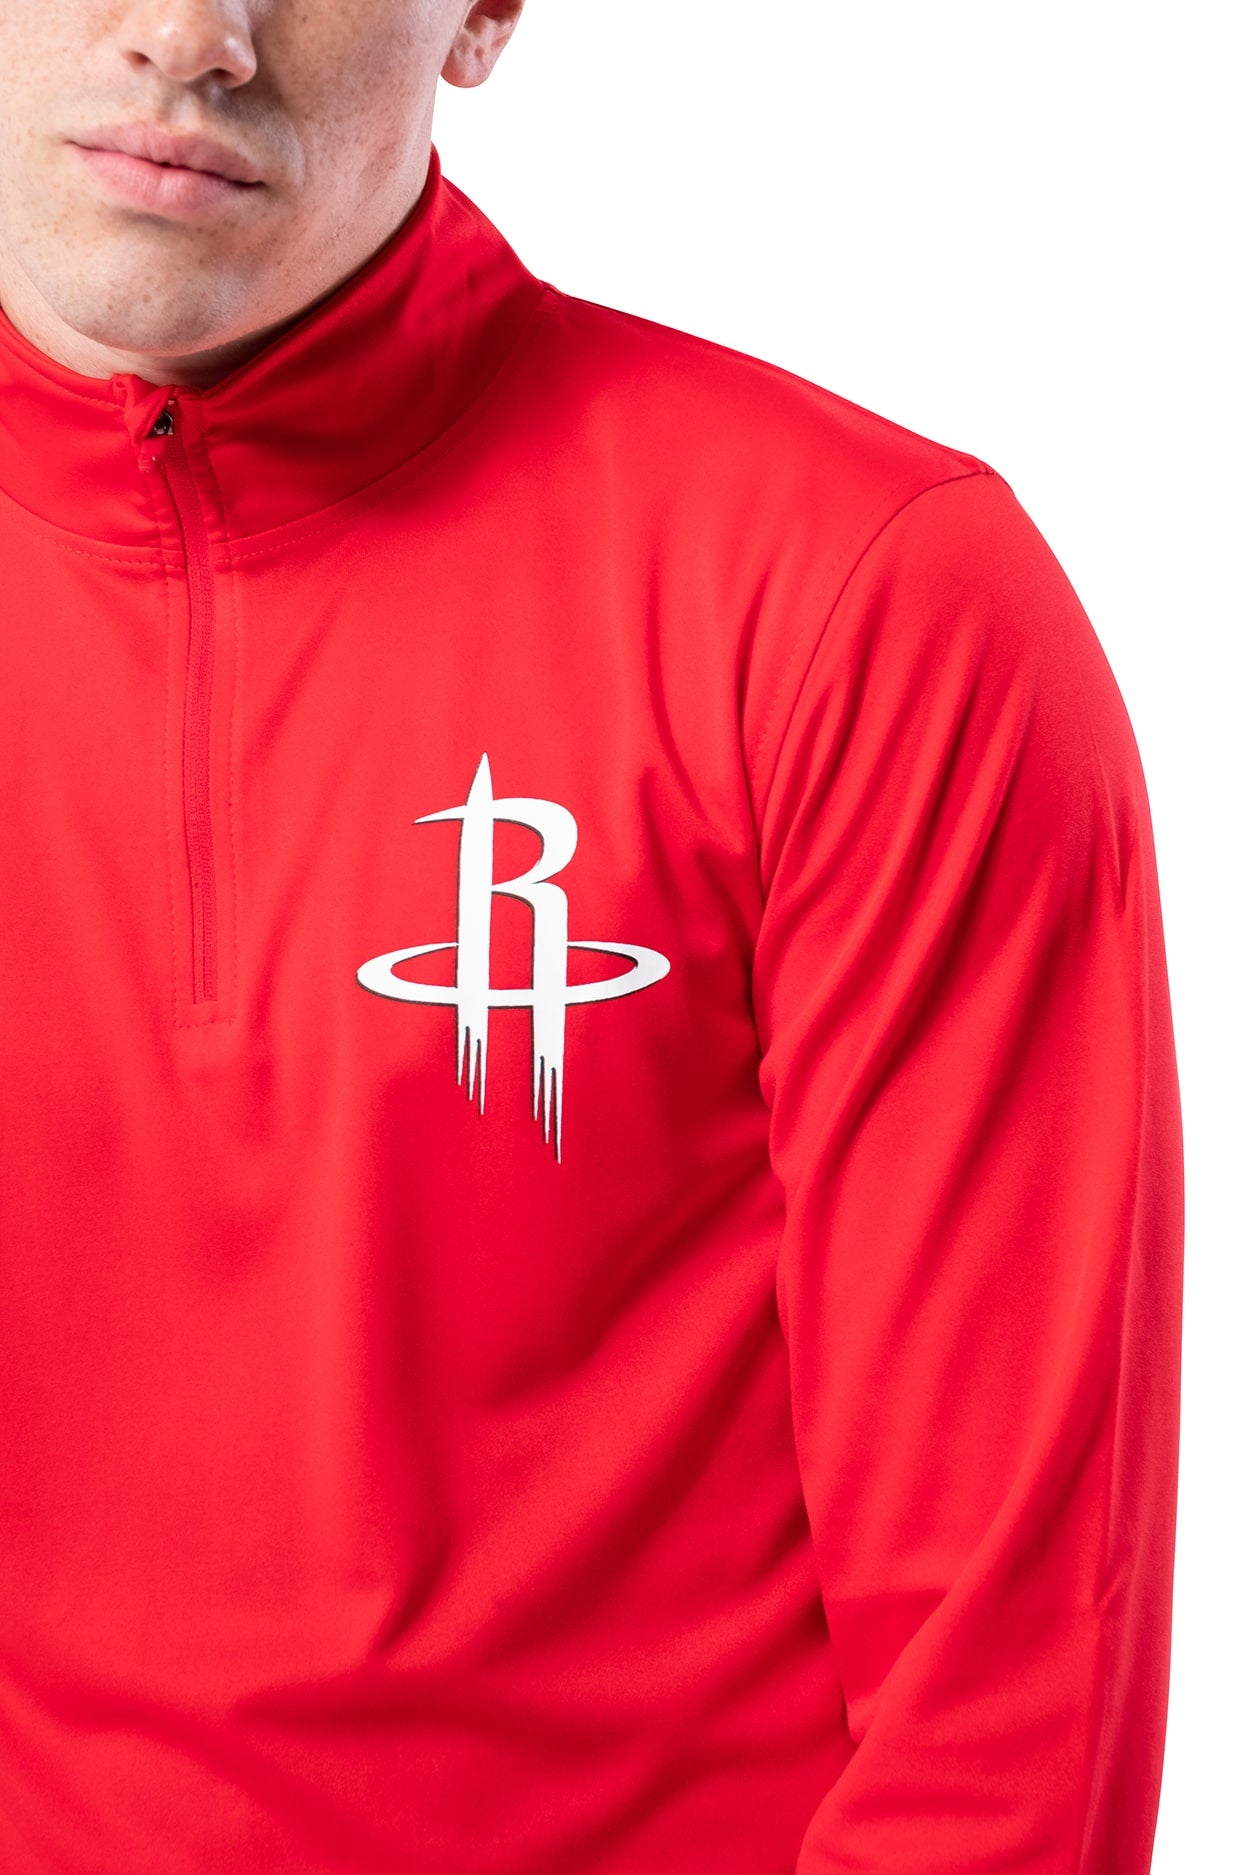 NBA Houston Rockets Men's Quarter Zip Quick Dry Tee|Houston Rockets